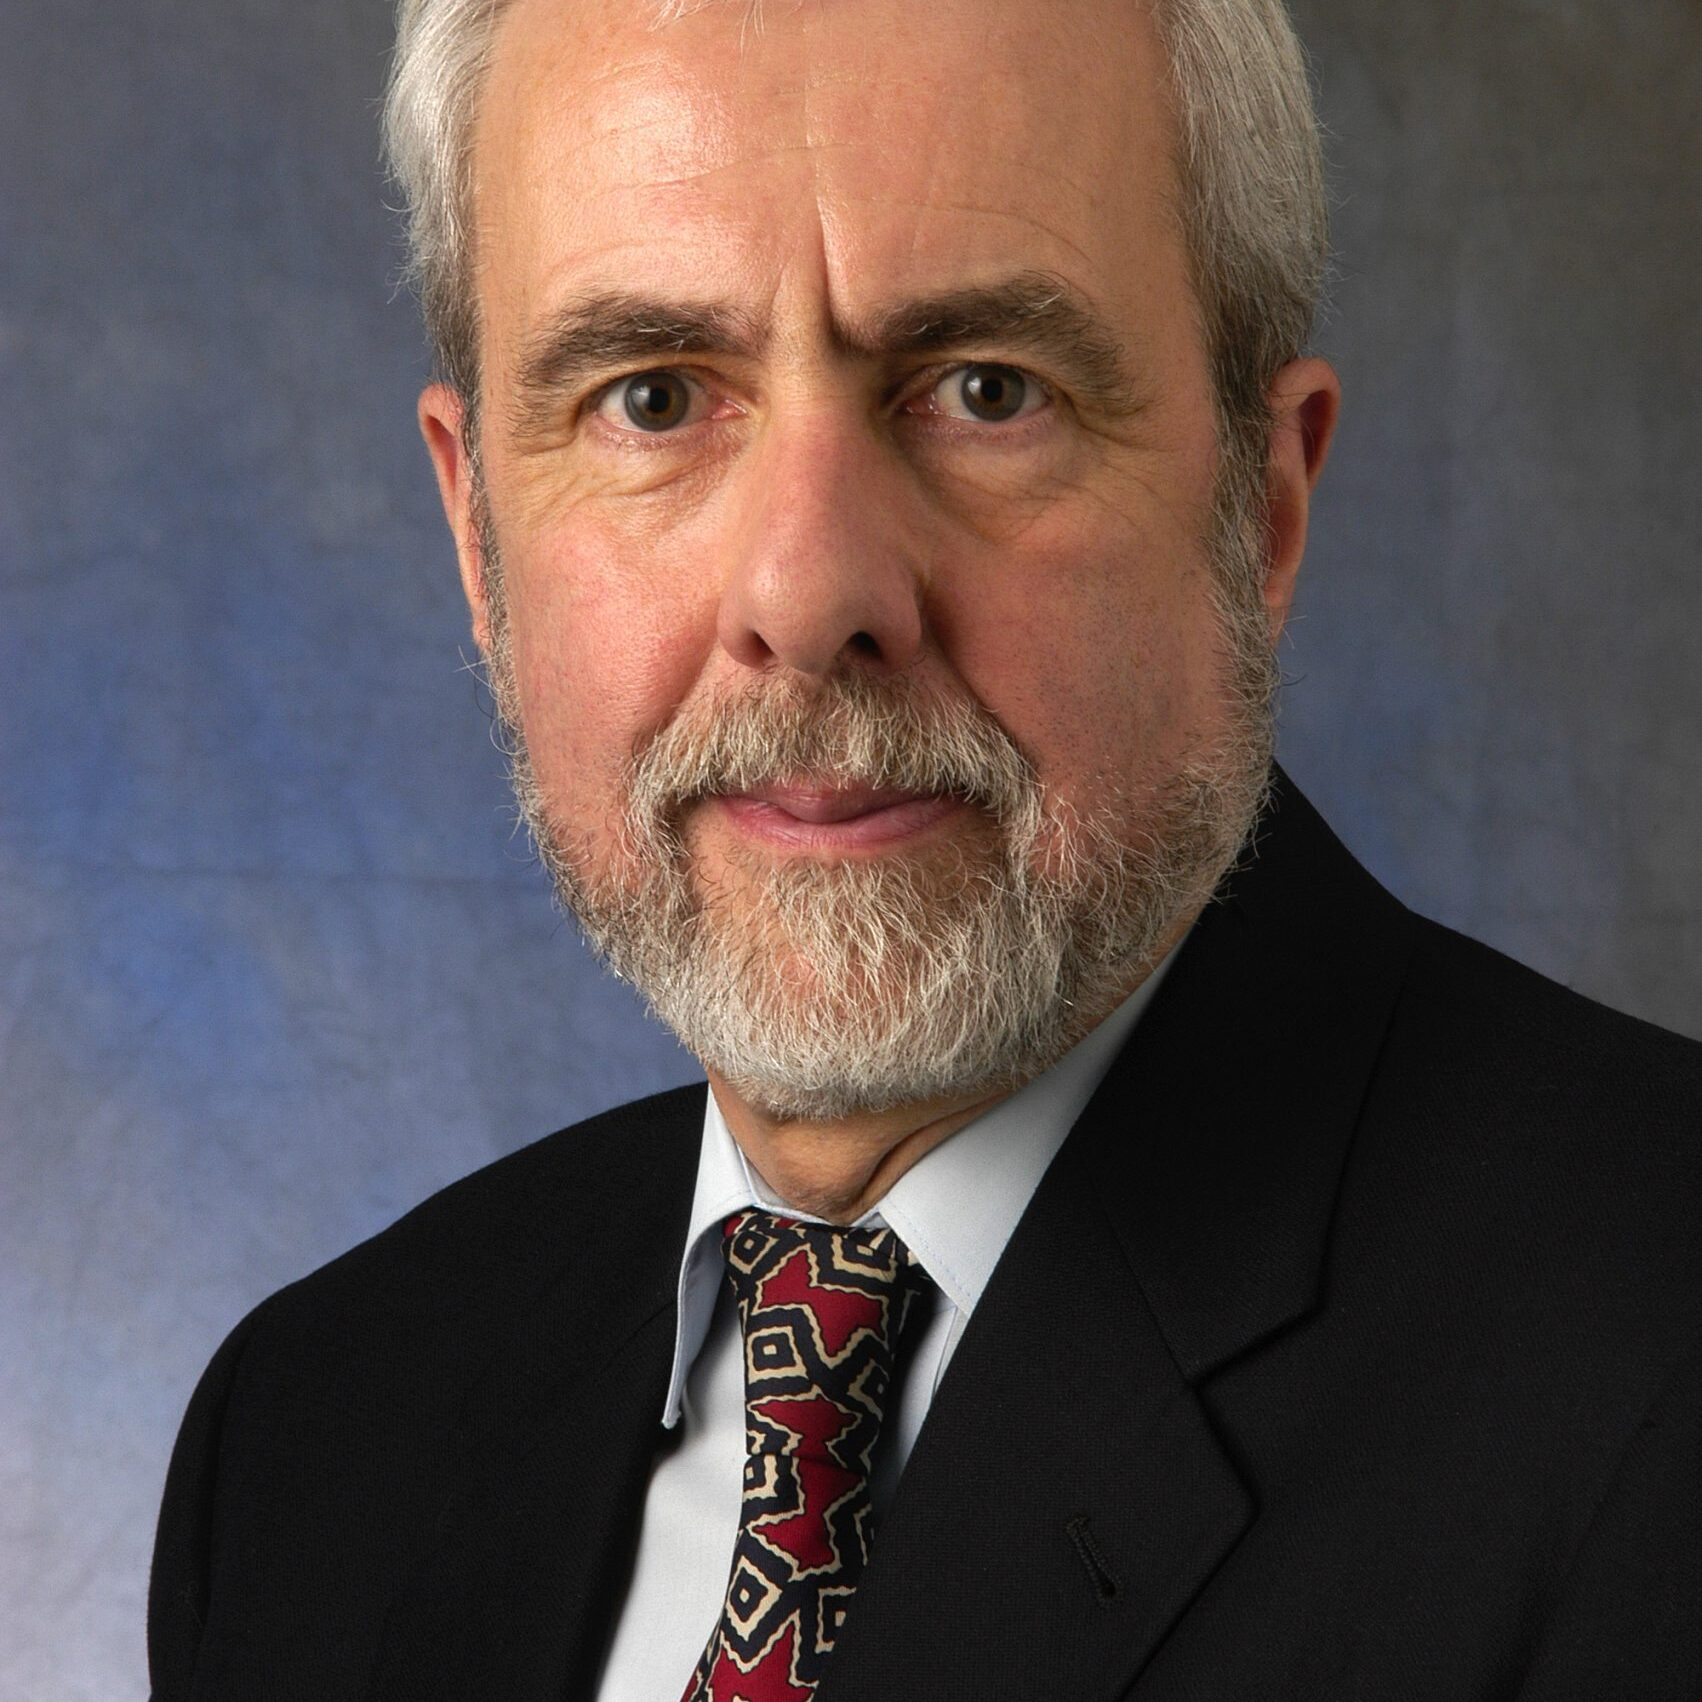 Portrait of Robert Lindsay, MD, PhD, Chief of Osteoporosis Center and Director of Clinical Research Center at Helen Hayes Hospital